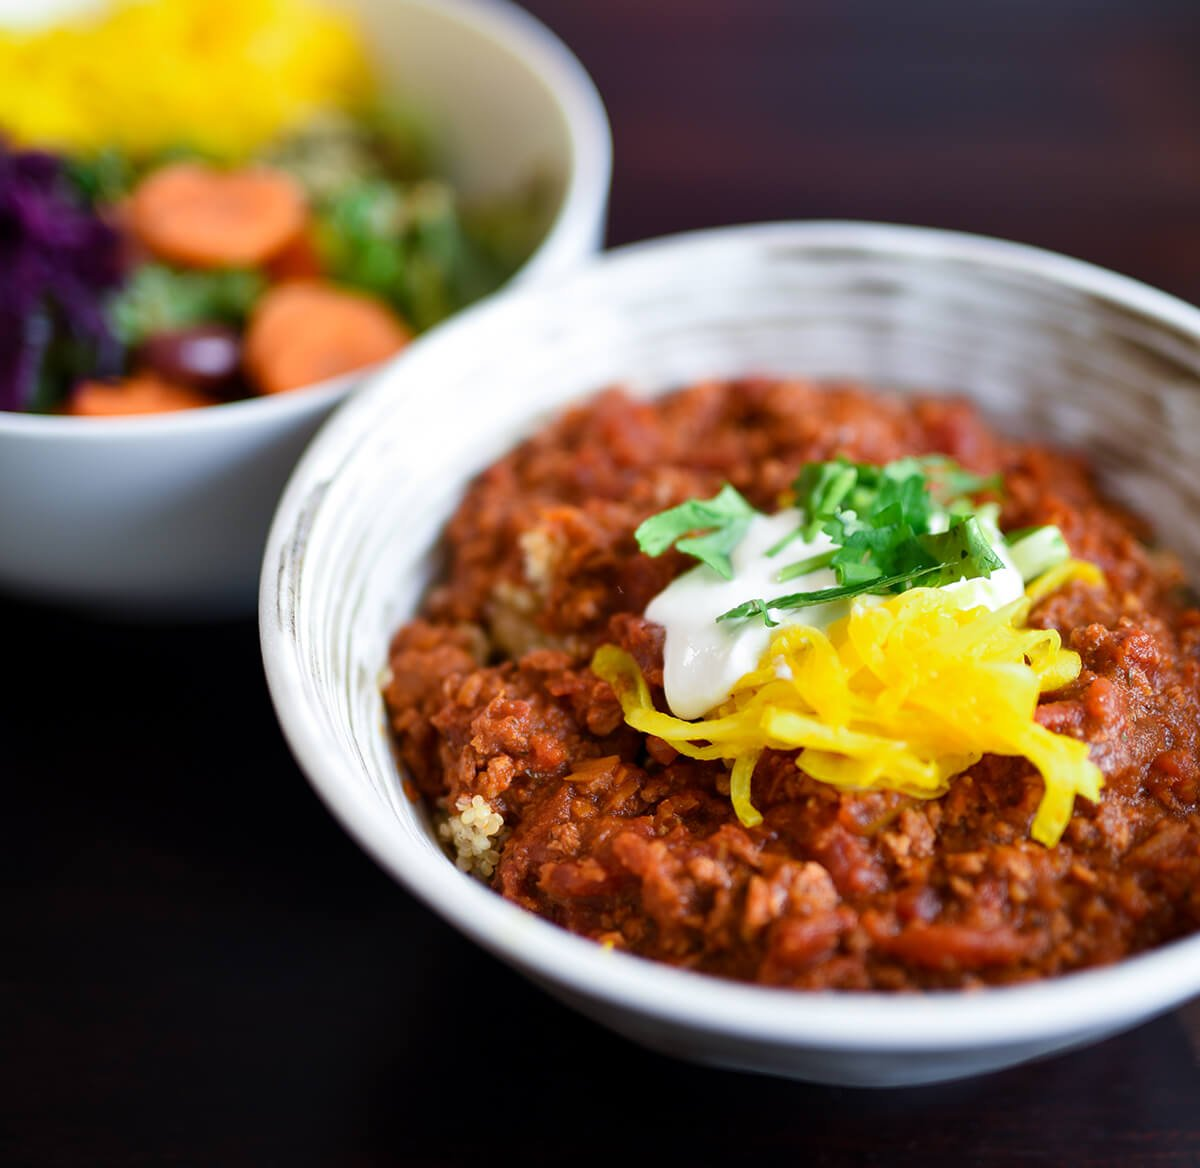 Dining Le Botaniste Restaurant Quinoa and Salad